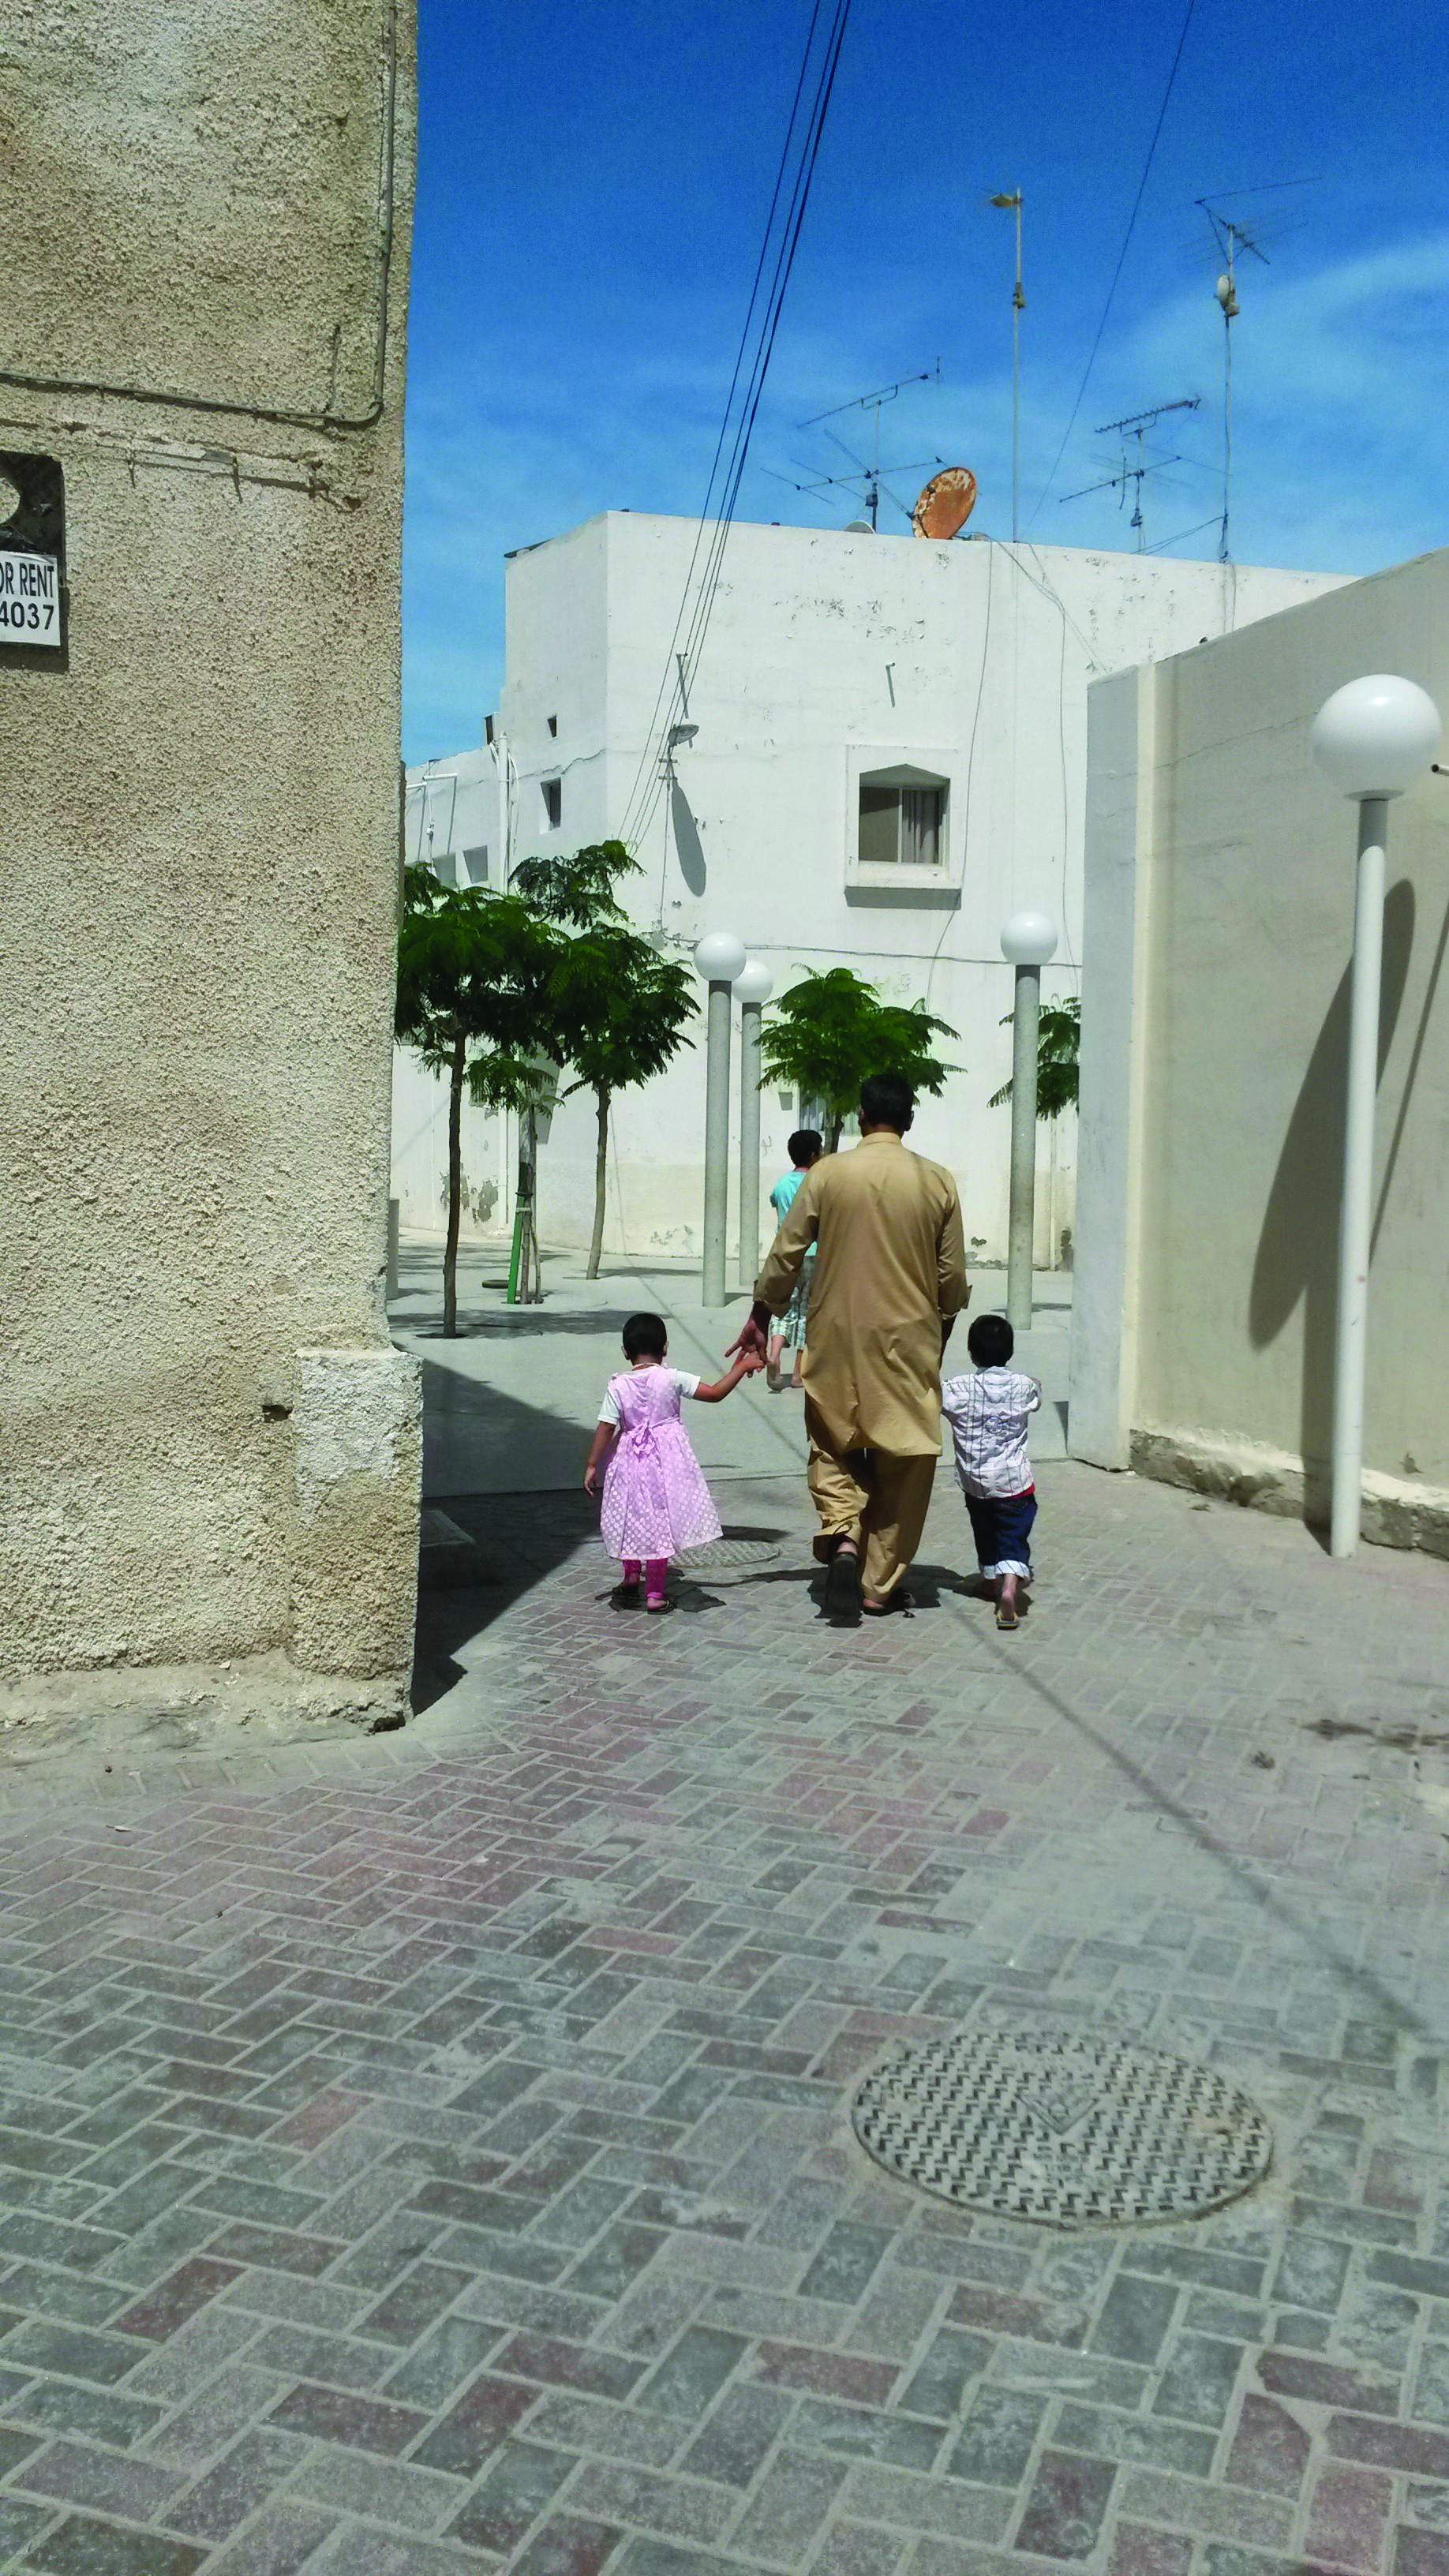 Systematica-BahrainUNESCO-Walking People